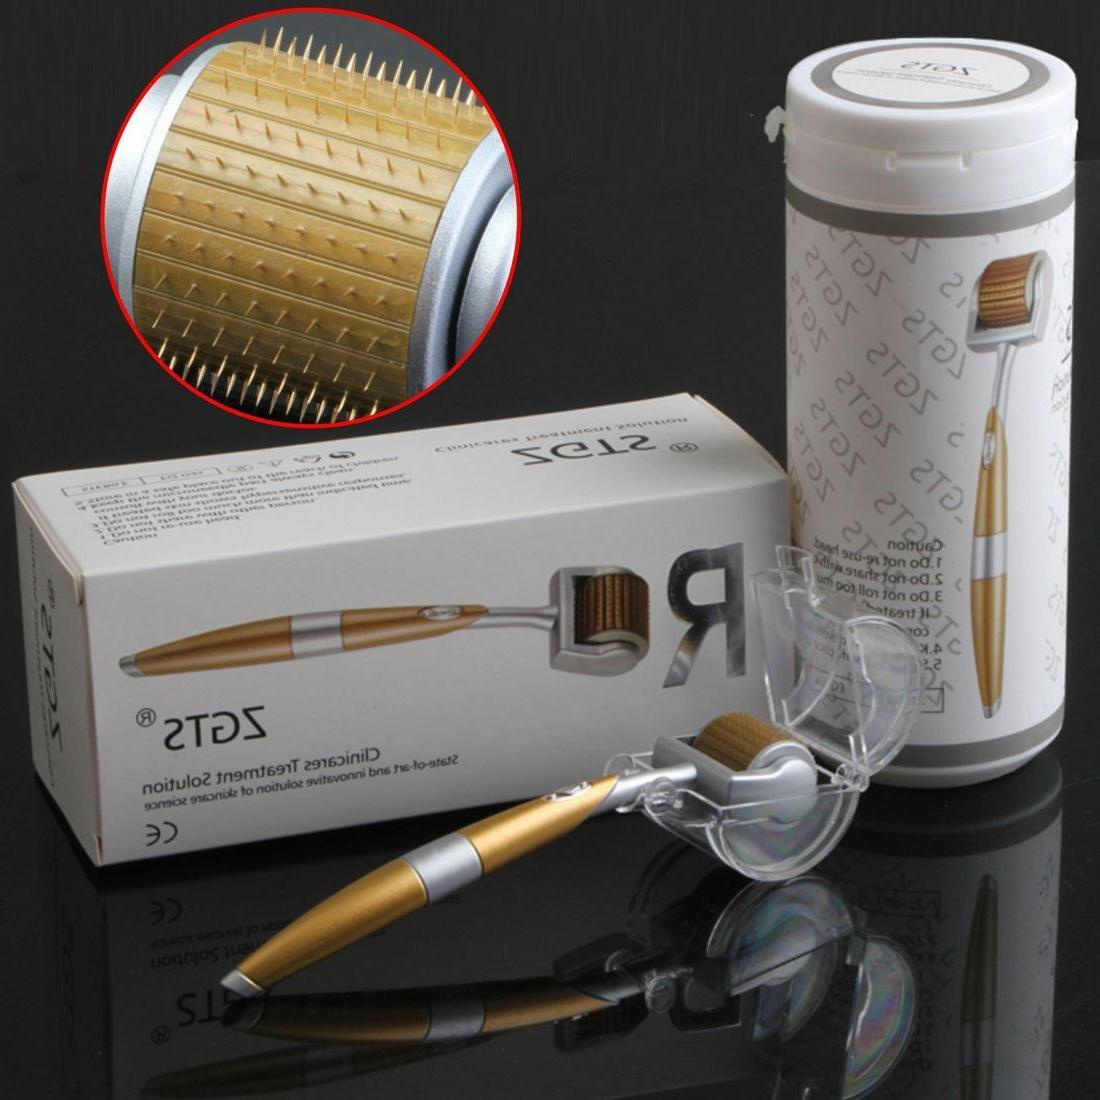 ZGTS Titanium Needle Therapy Derma Roller 1.0mm Skincare Acne